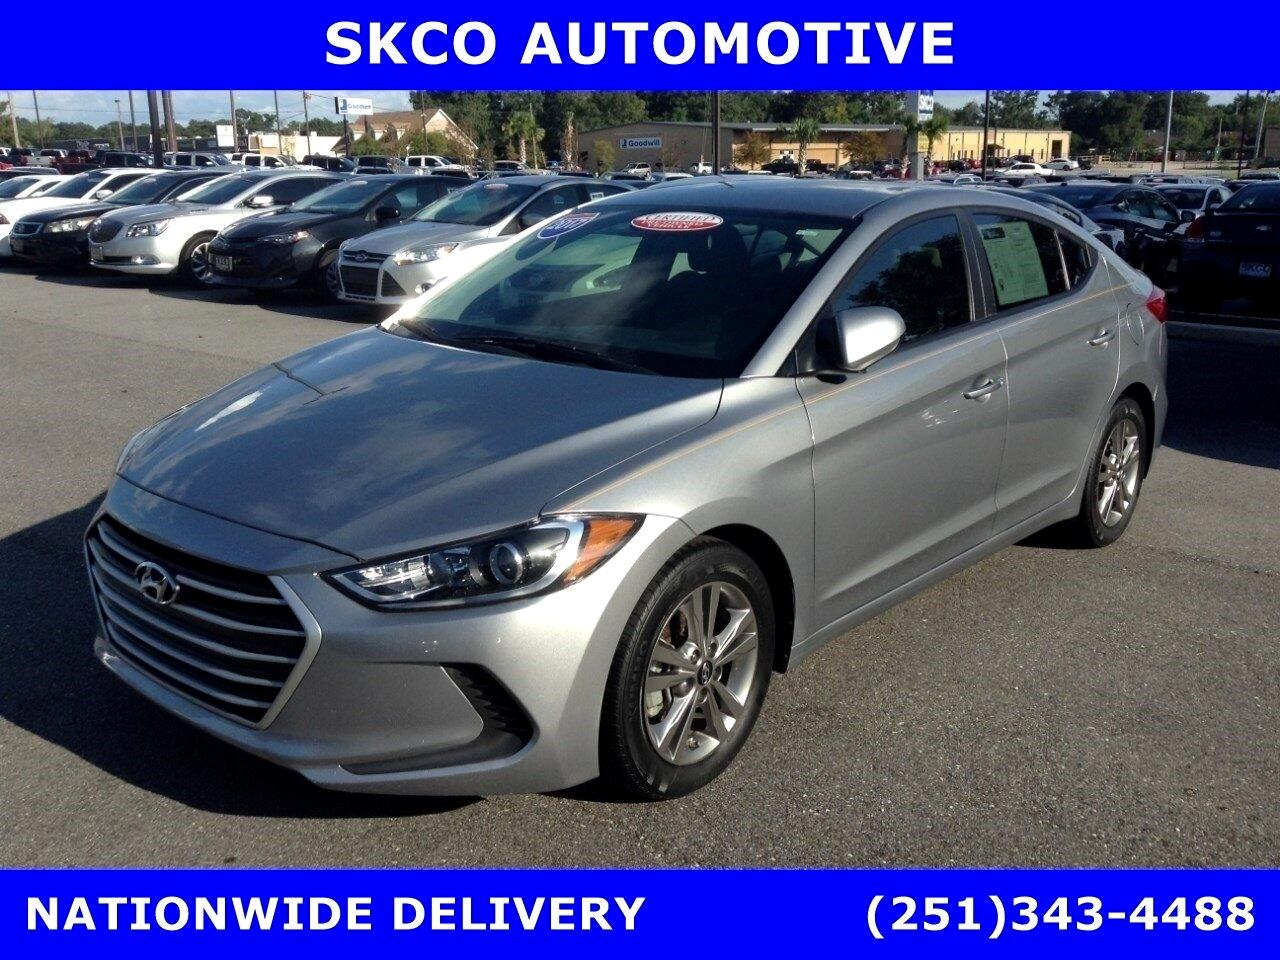 2017 Hyundai Elantra SE 2.0L Auto (Alabama) *Ltd Avail*